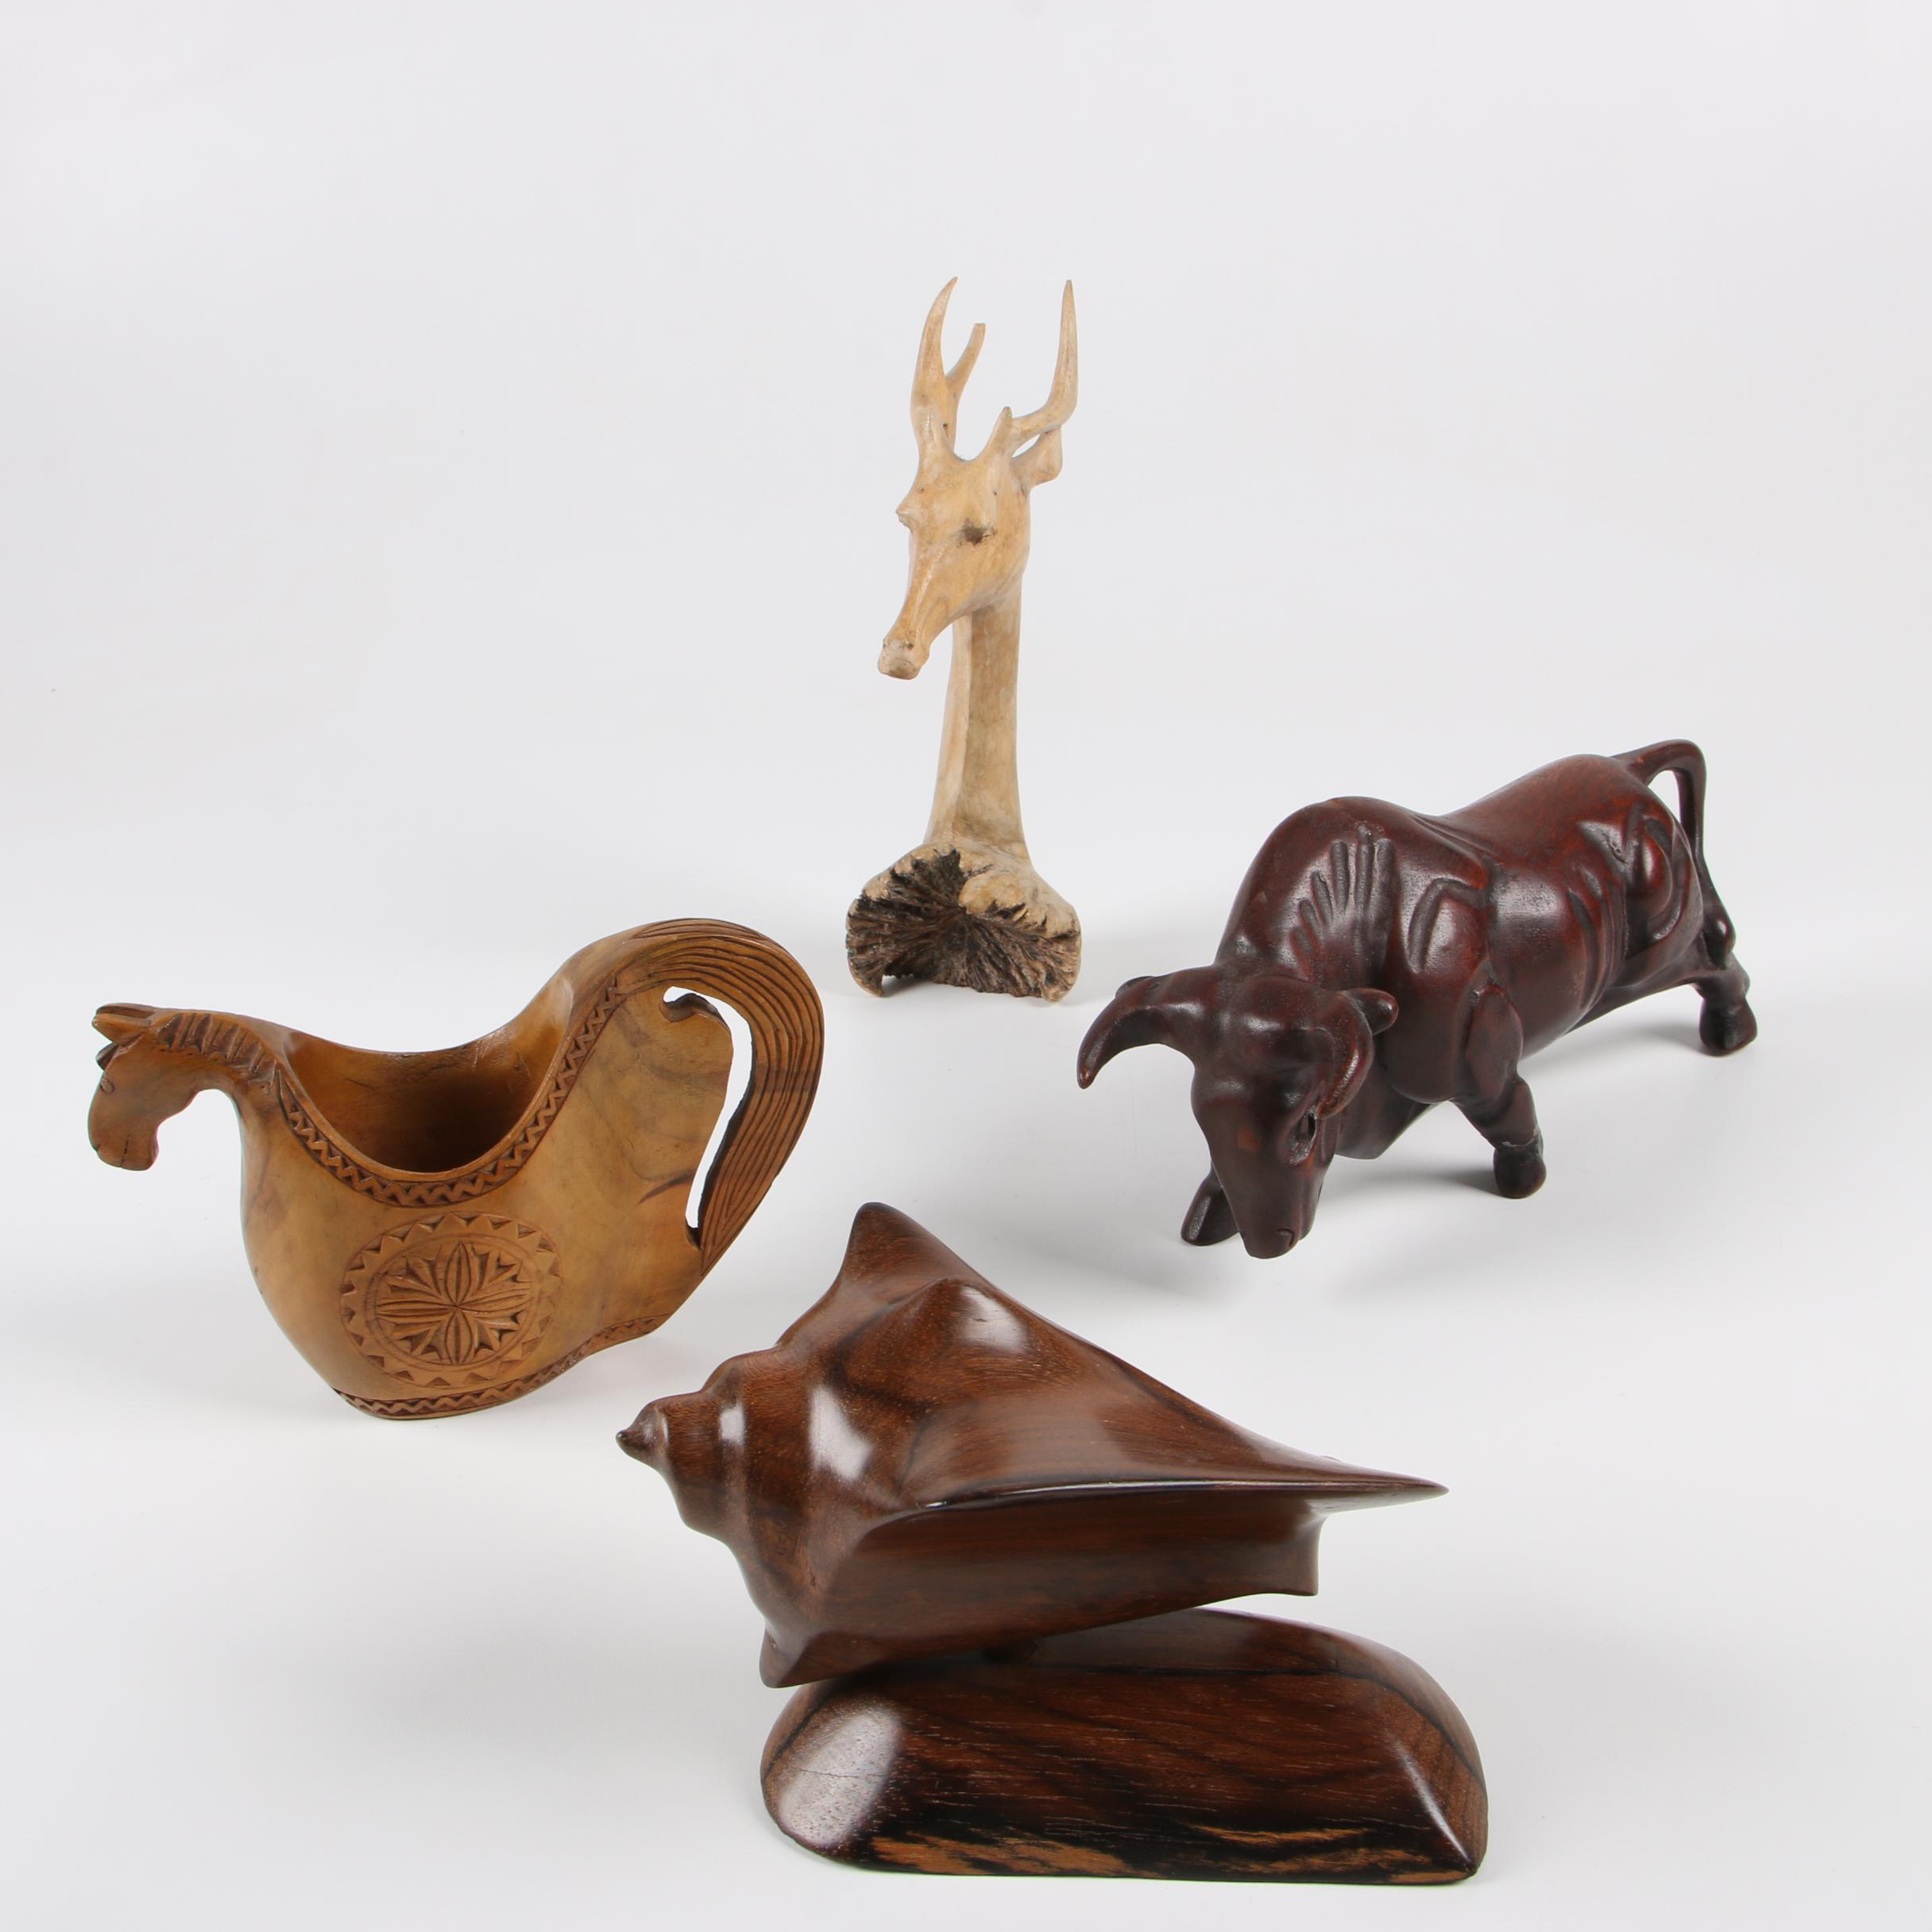 Wooden carvings of animals ebth